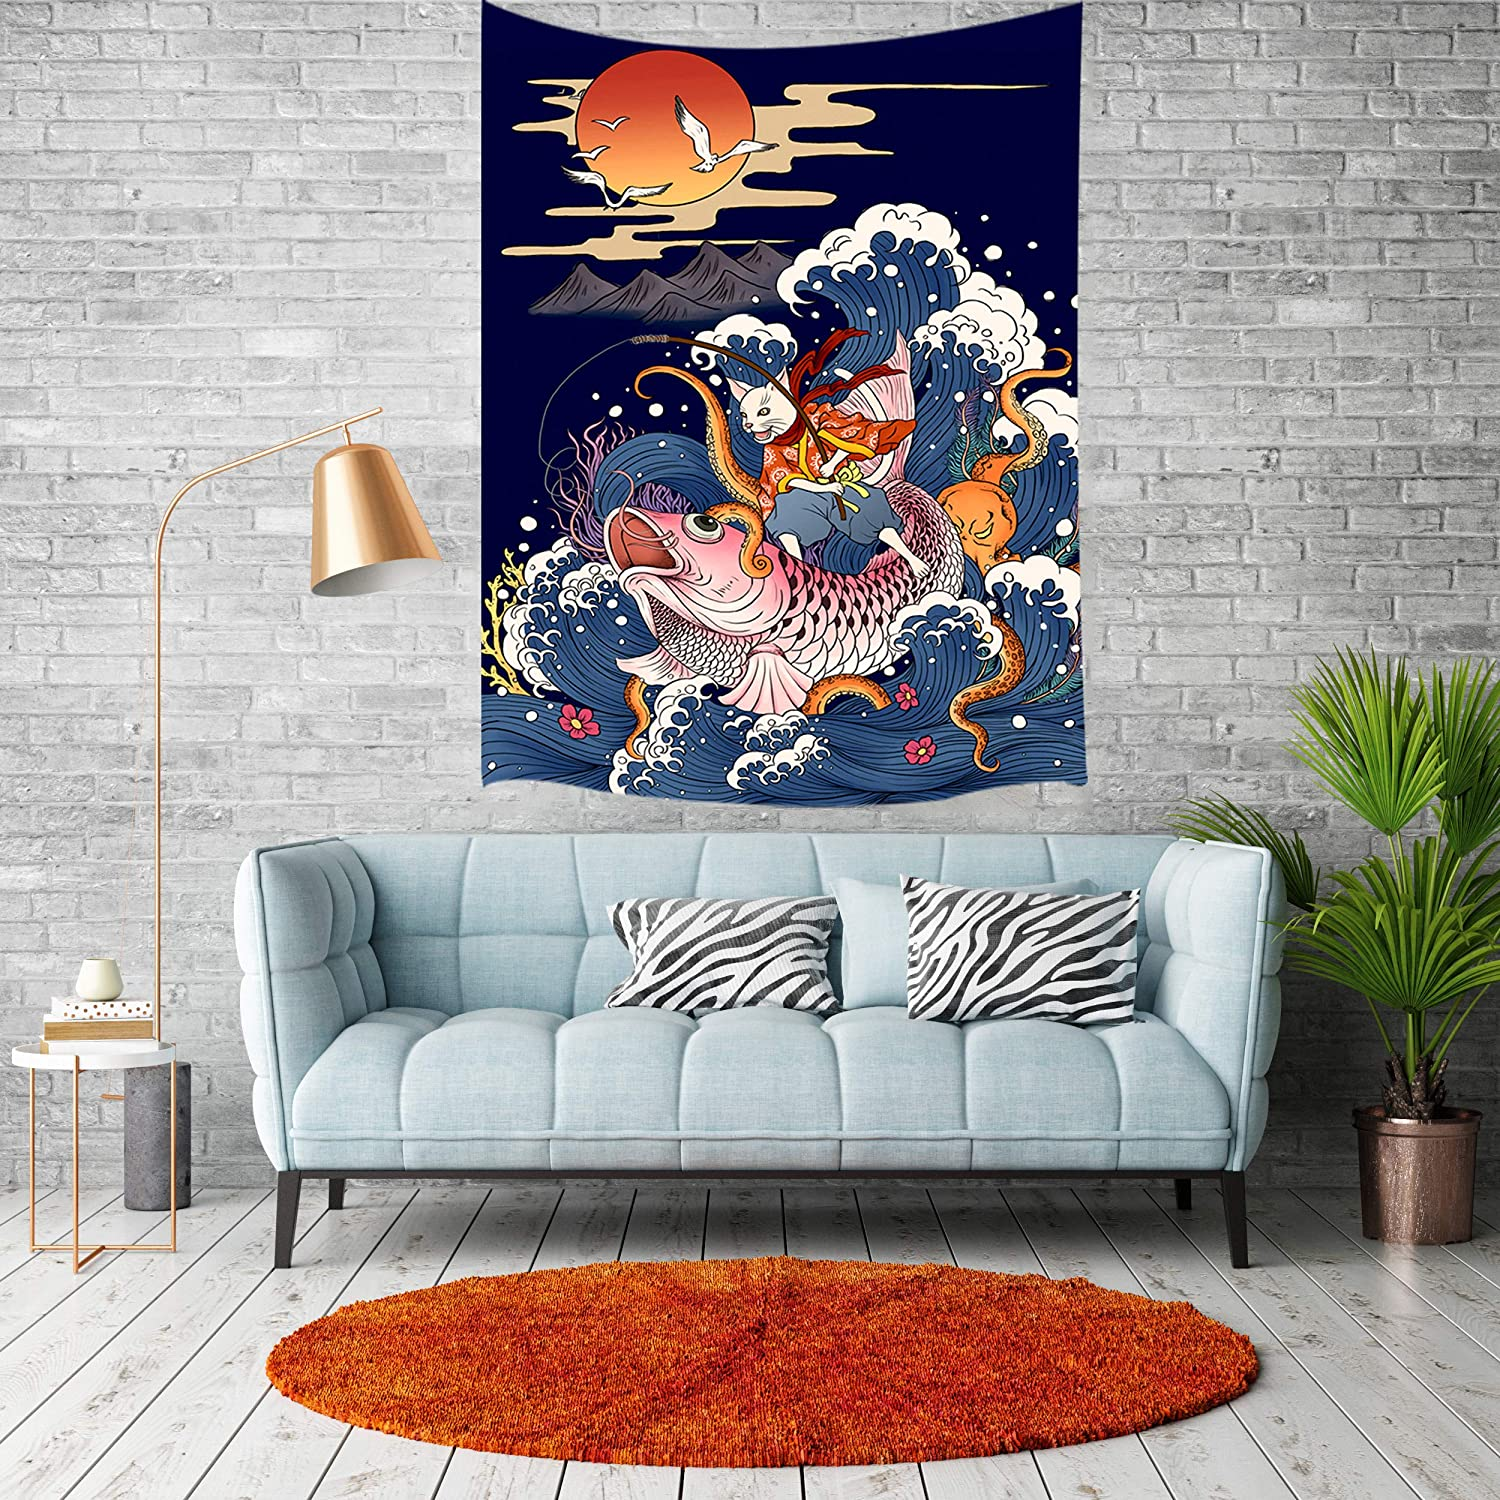 JAWO Japanese Ukiyo-e Wall Tapestry Cat on Large Koi Fish in Sea Great Wave Trippy Hipe Wall Hanging Tapestry Blanket for Bedroom Living Room Dorm Wall Decor Art Tapestry Bedspread 40X60 inches